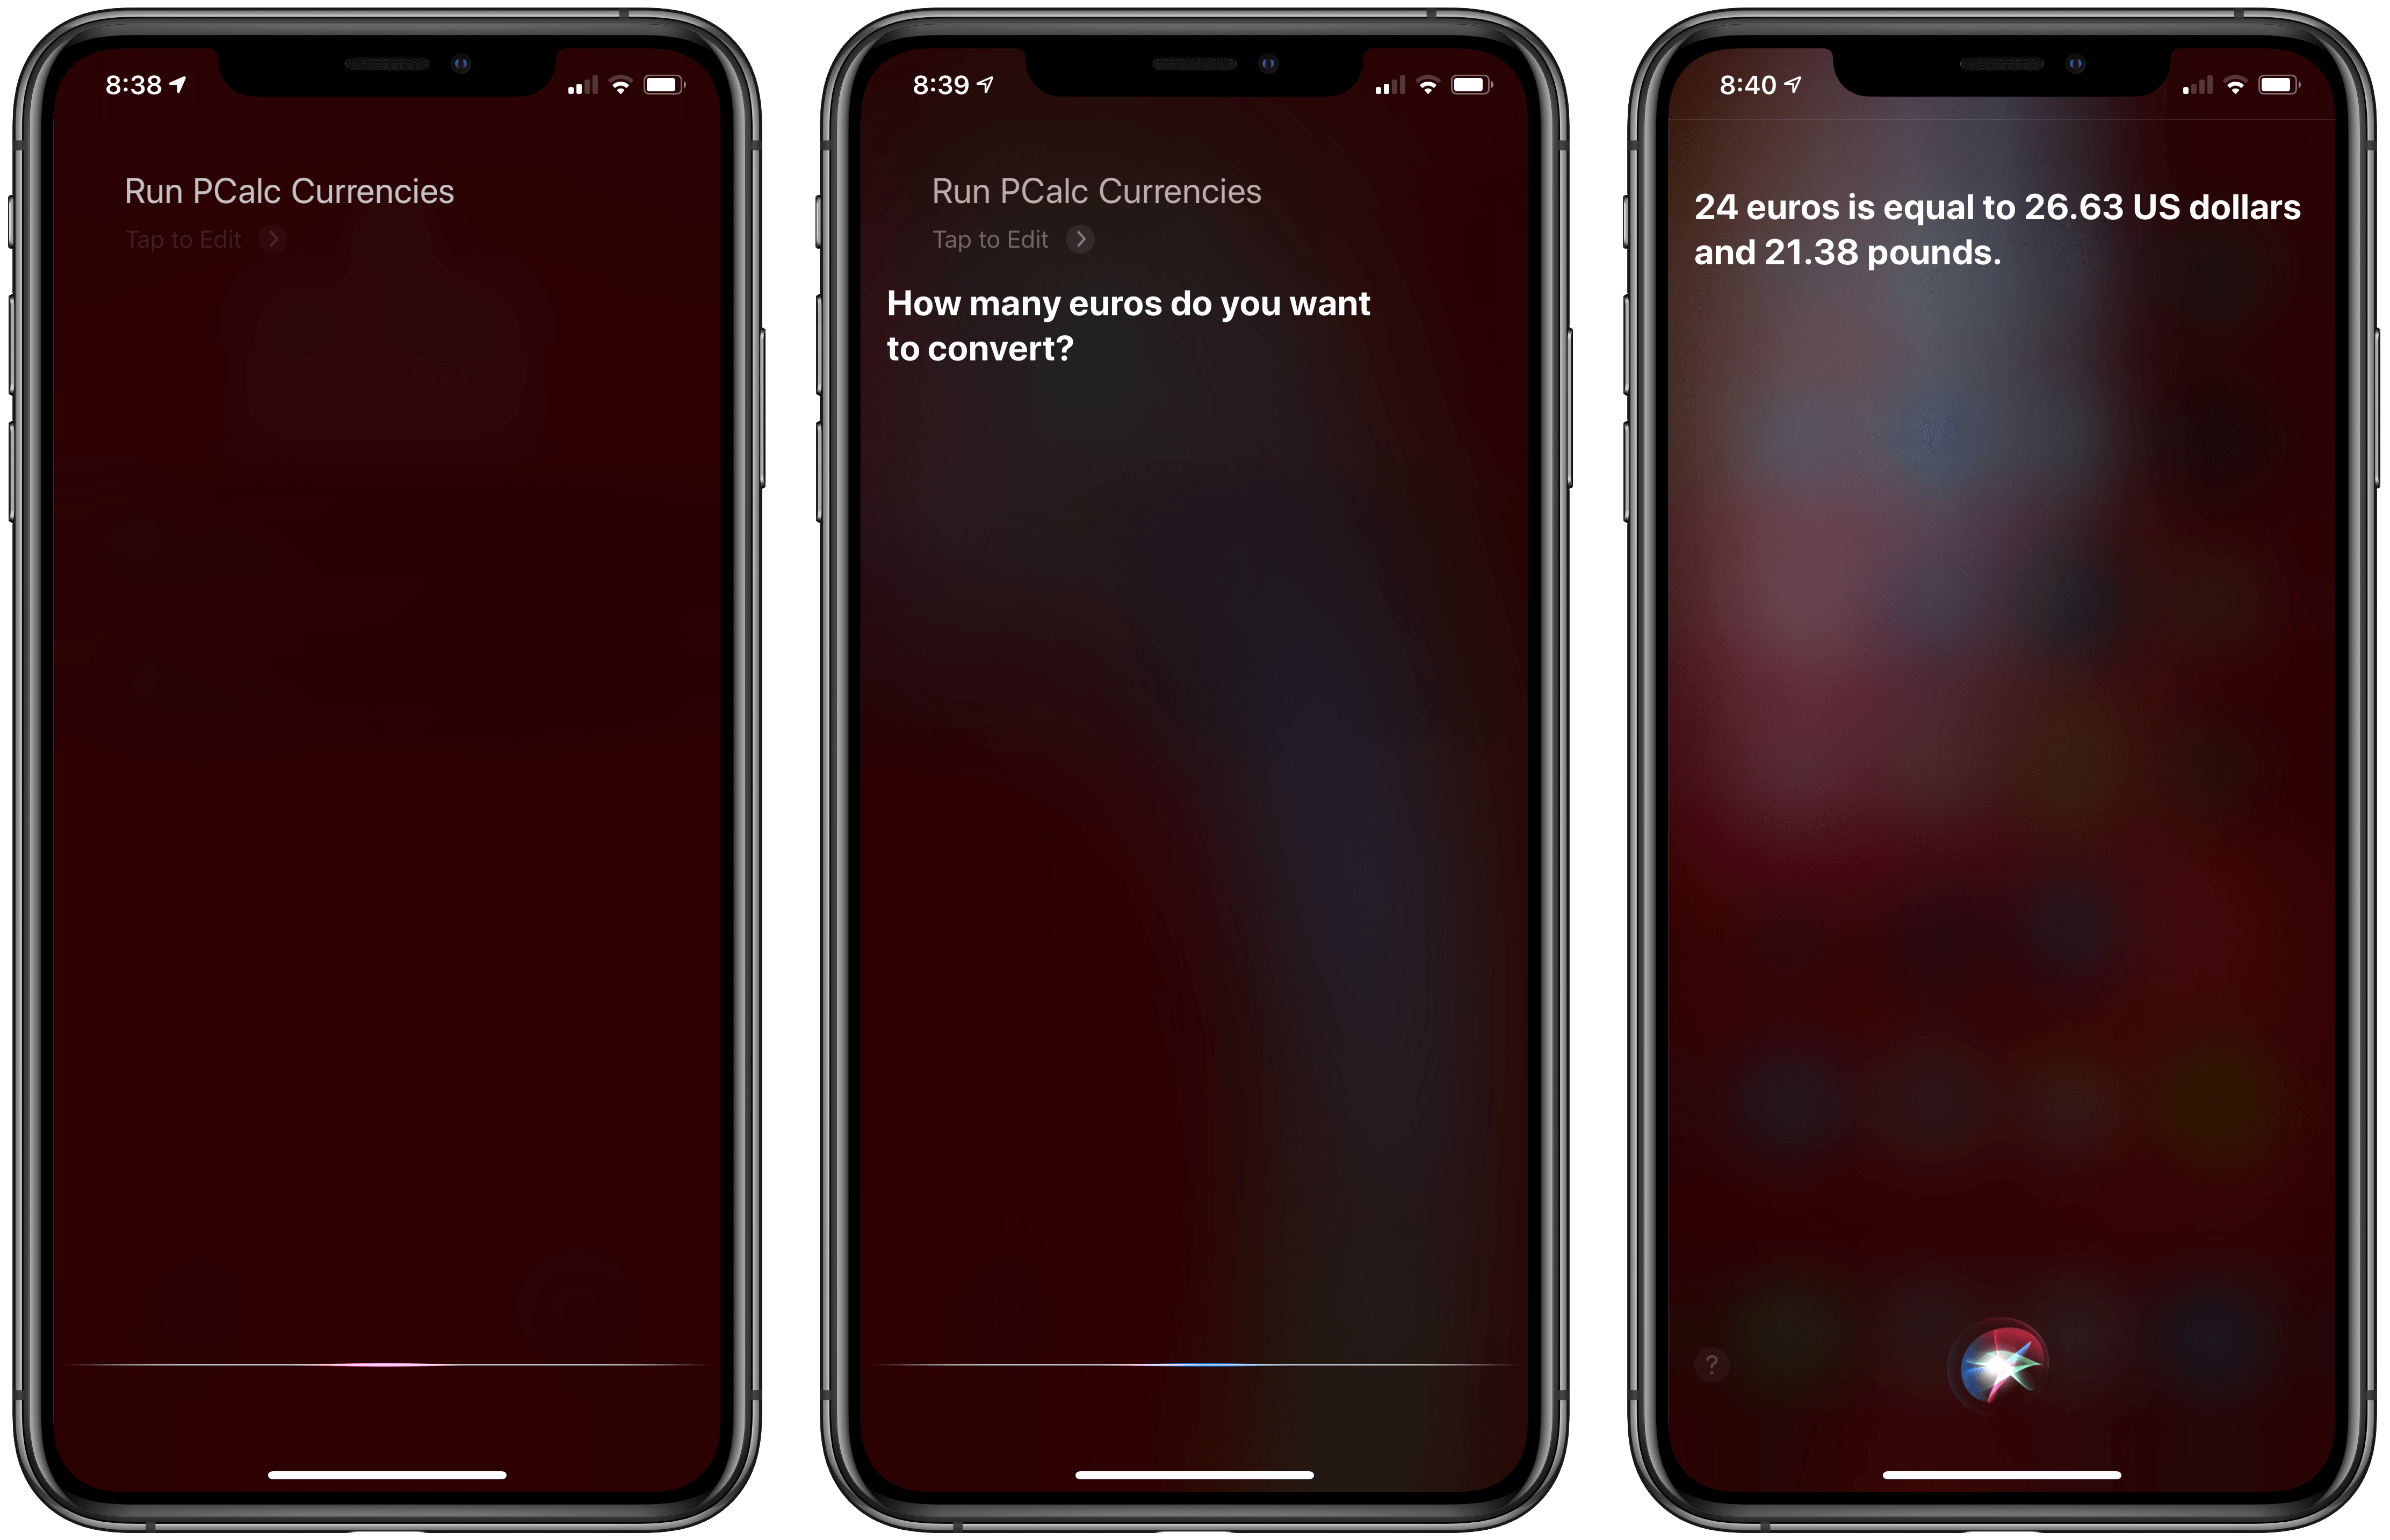 Running PCalc Currencies as a conversational Siri shortcut, which will debut with iOS 13.1.